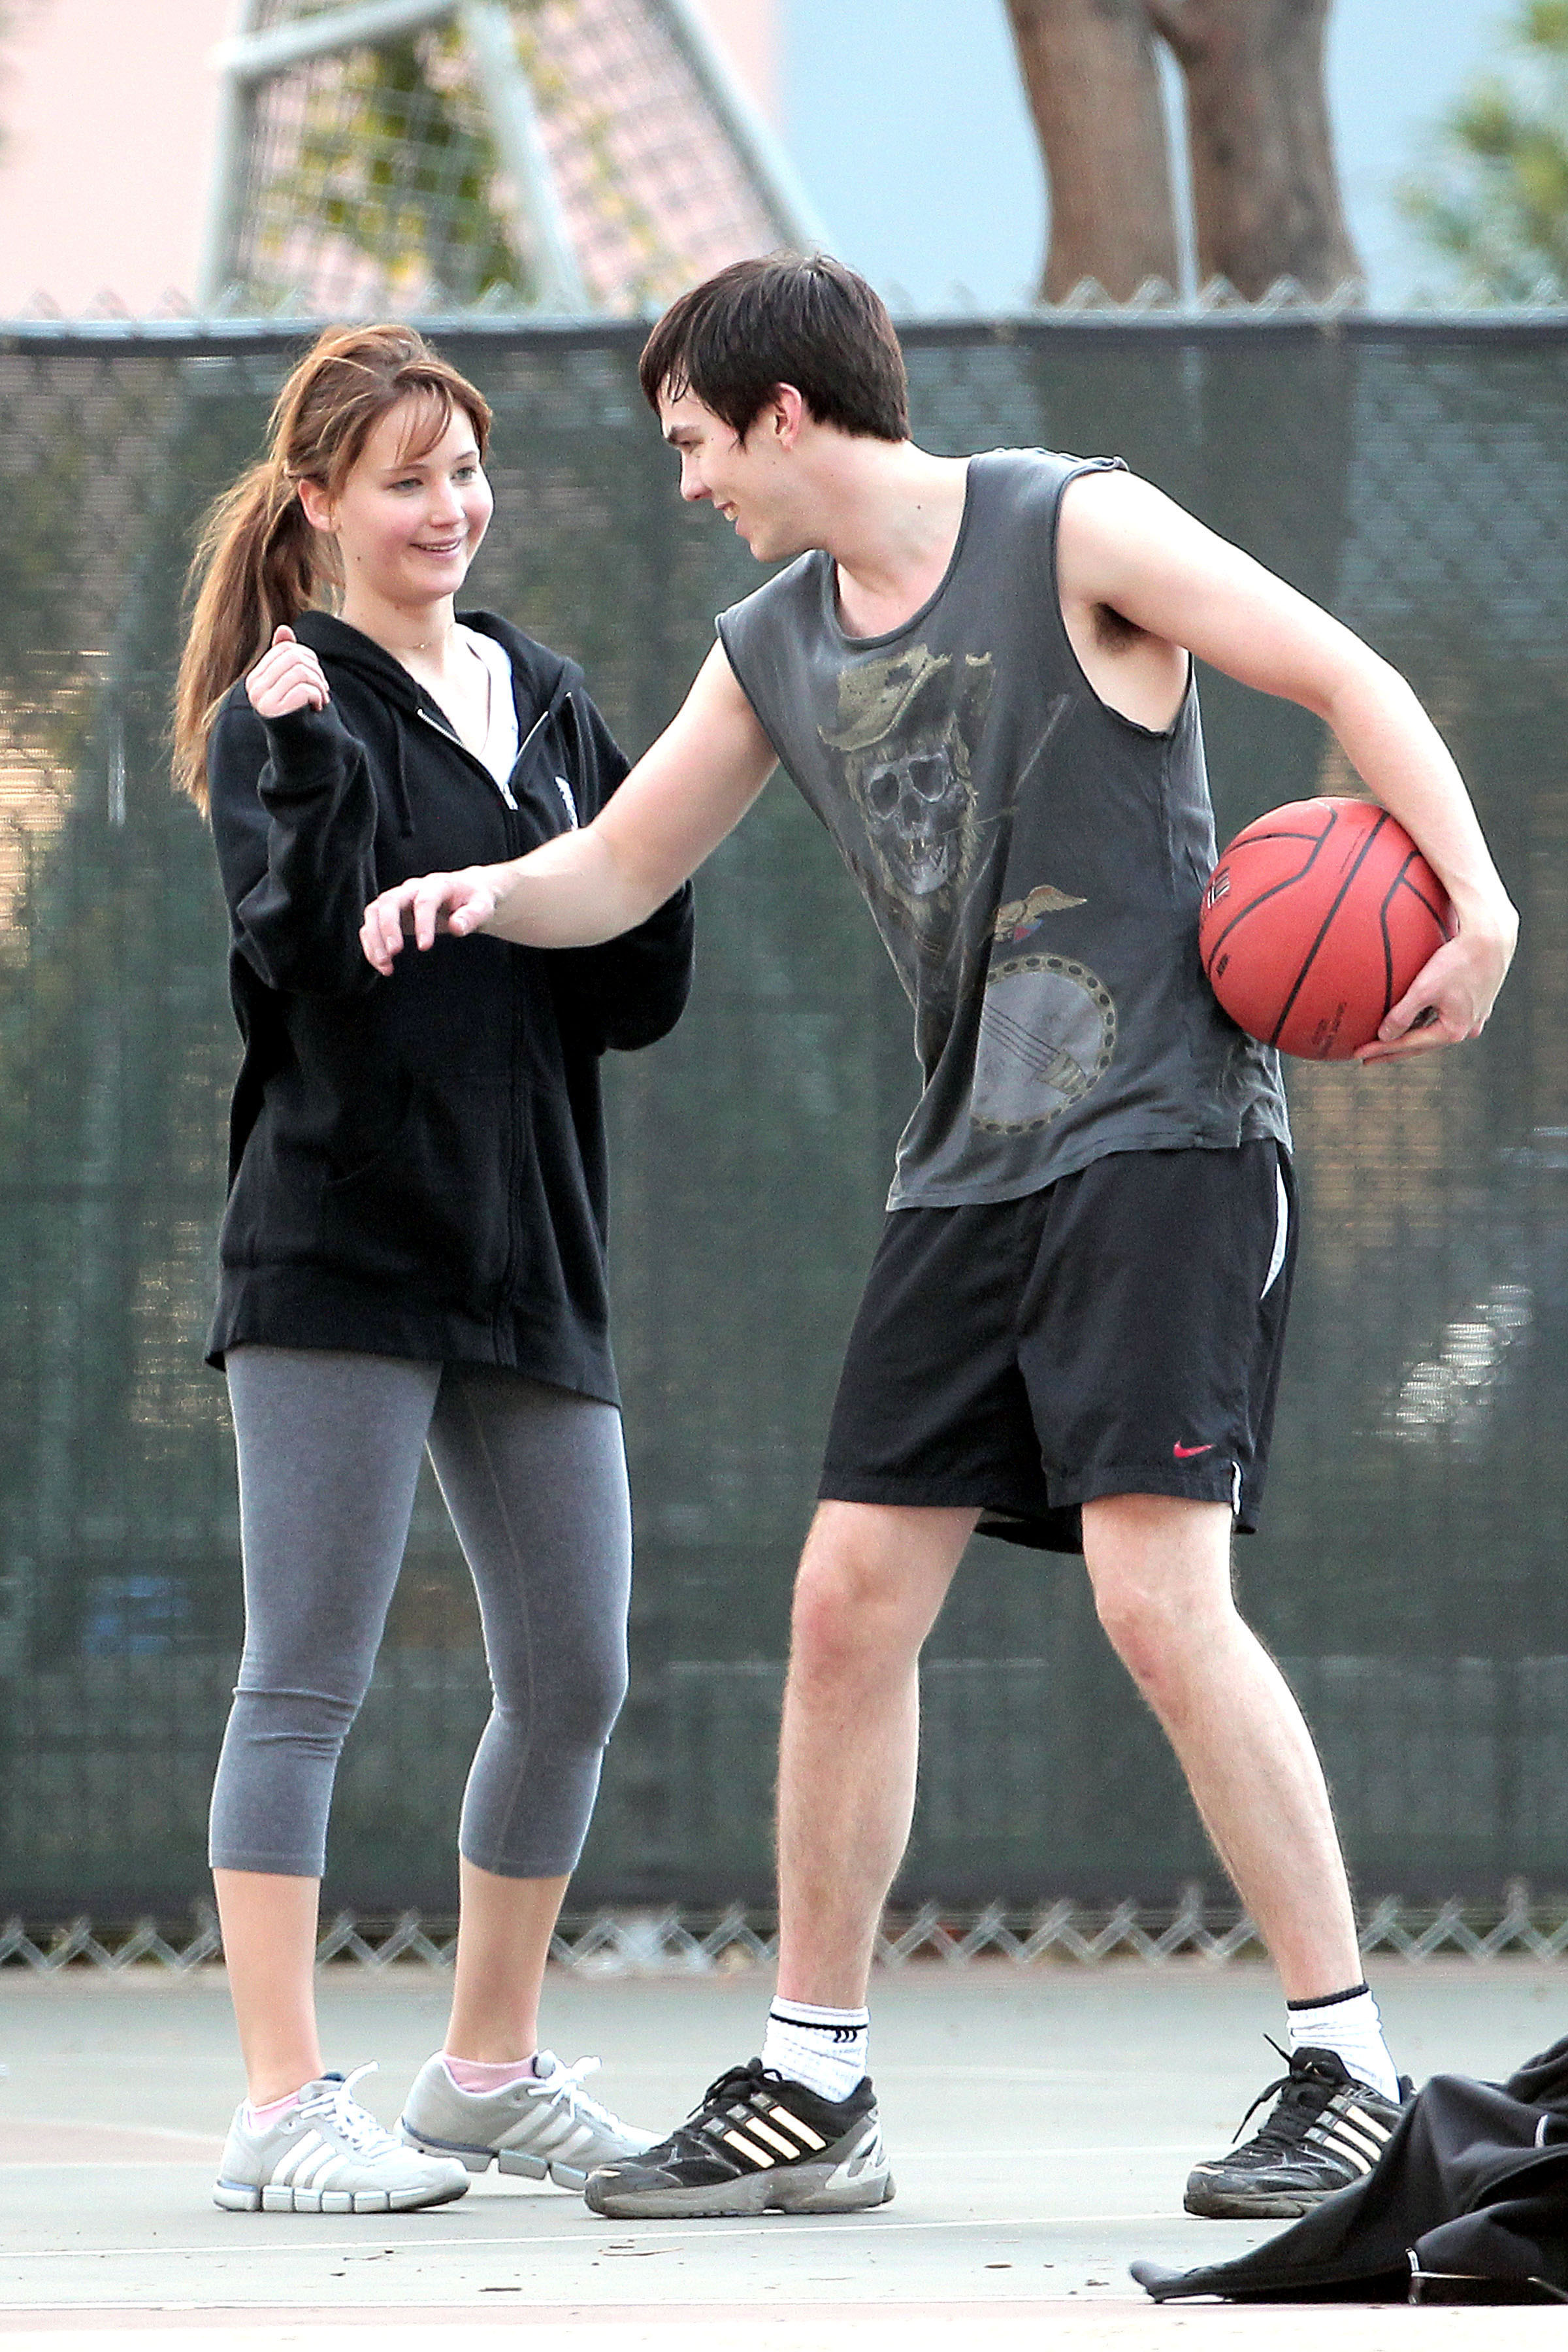 New photos: Jennifer Lawrence and Nicholas Hoult have fun playing ... Justin Timberlake Smiling